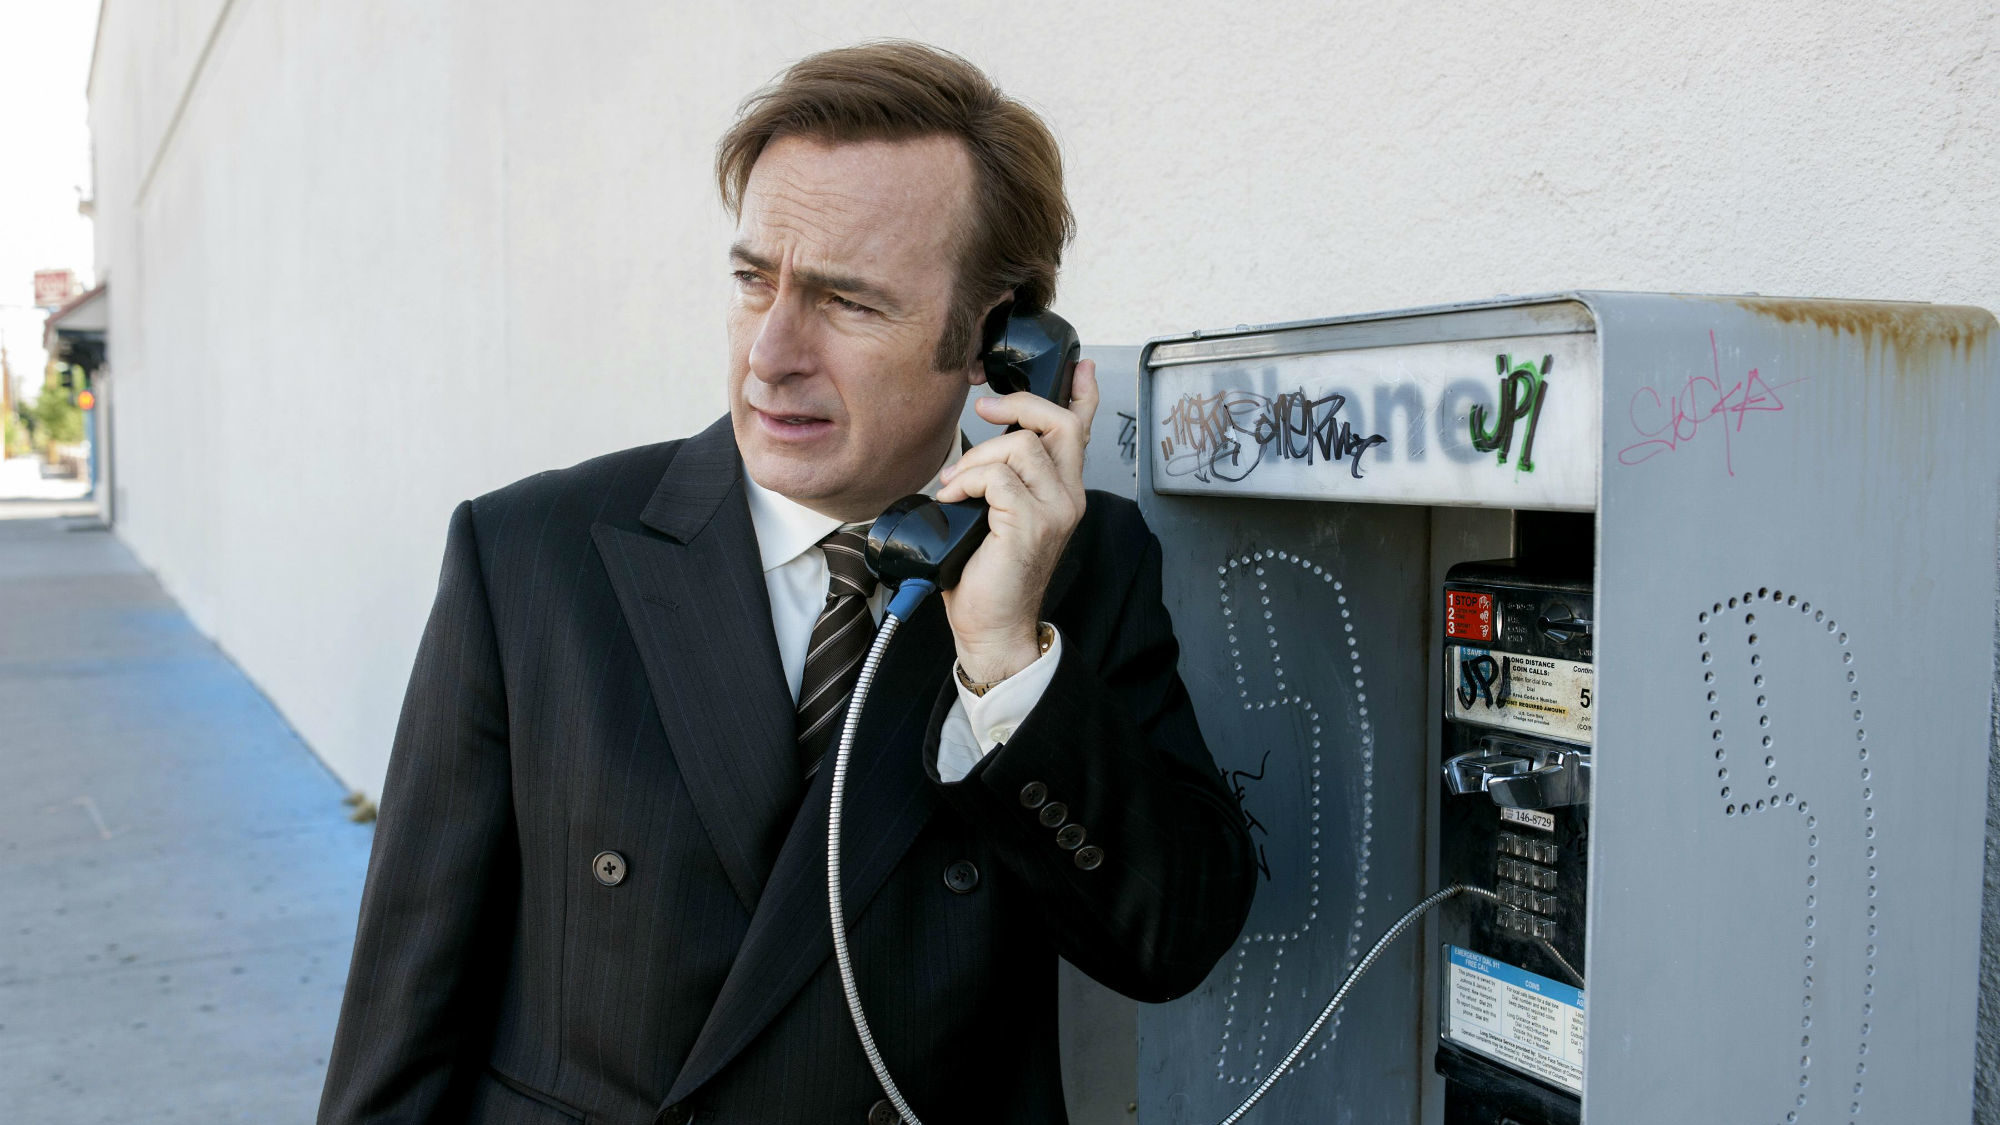 Better Call Saul Season 5 Premiere Date, Spoilers Saul Goodman is Open for Business